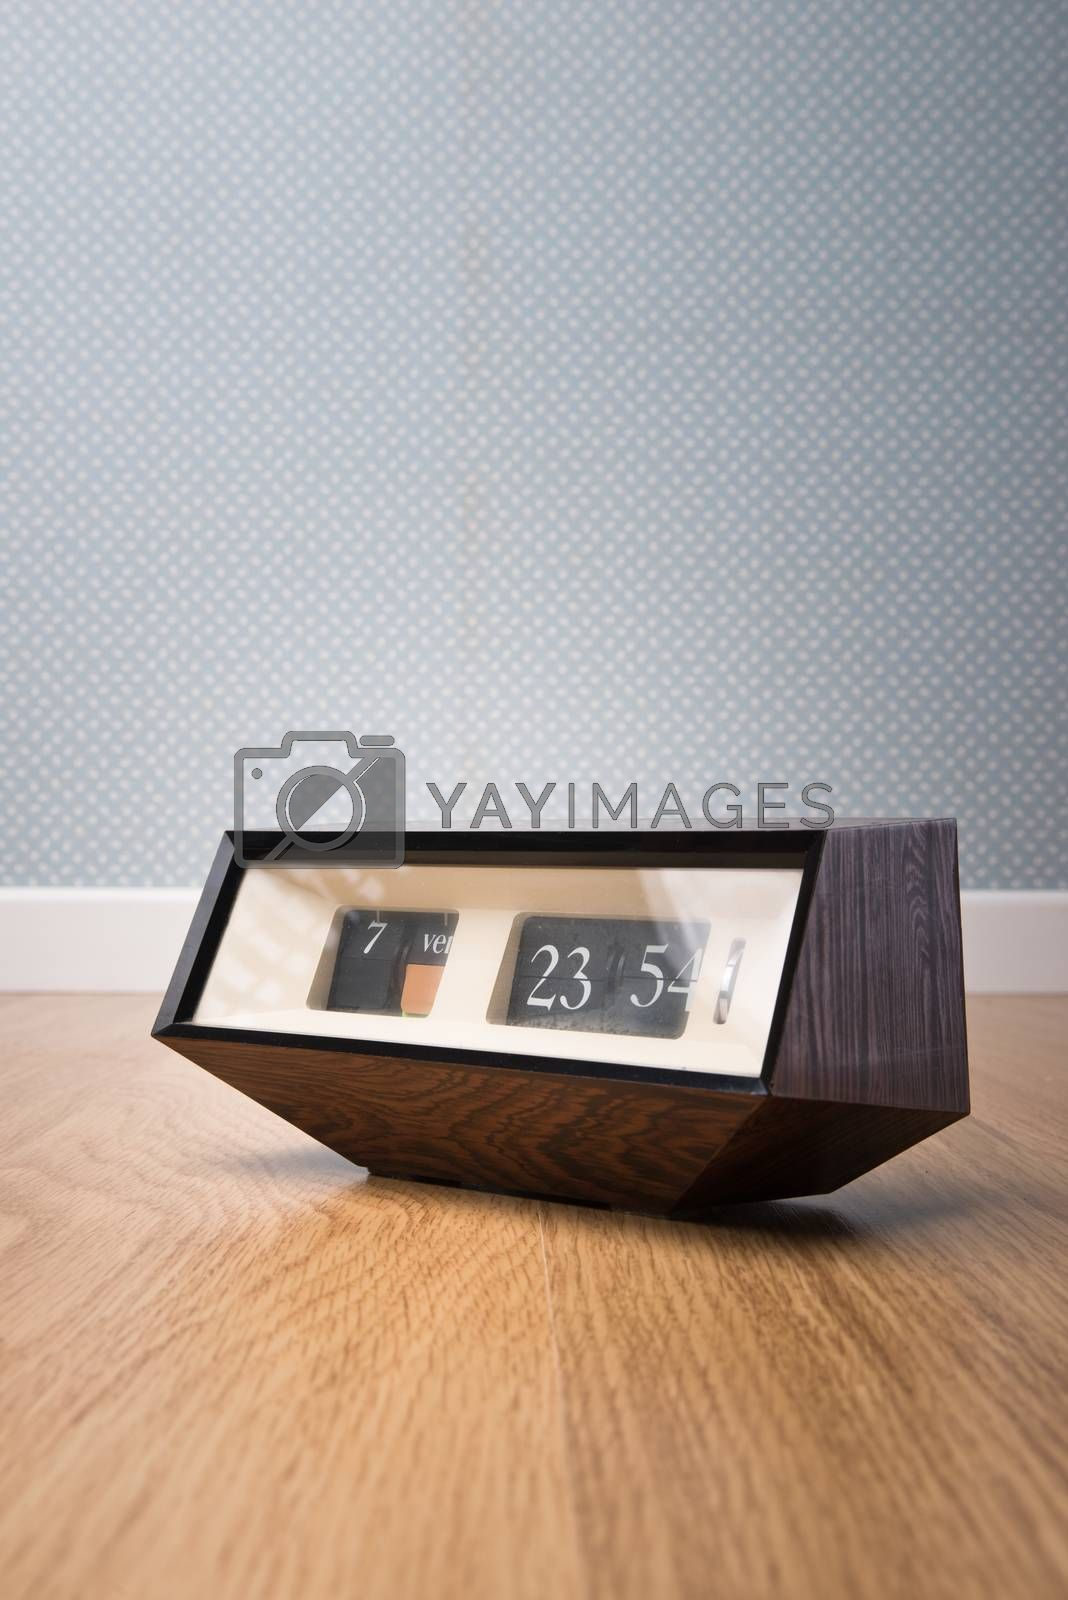 Vintage edgy clock on wooden surface with vintage dotted wallpaper on background.